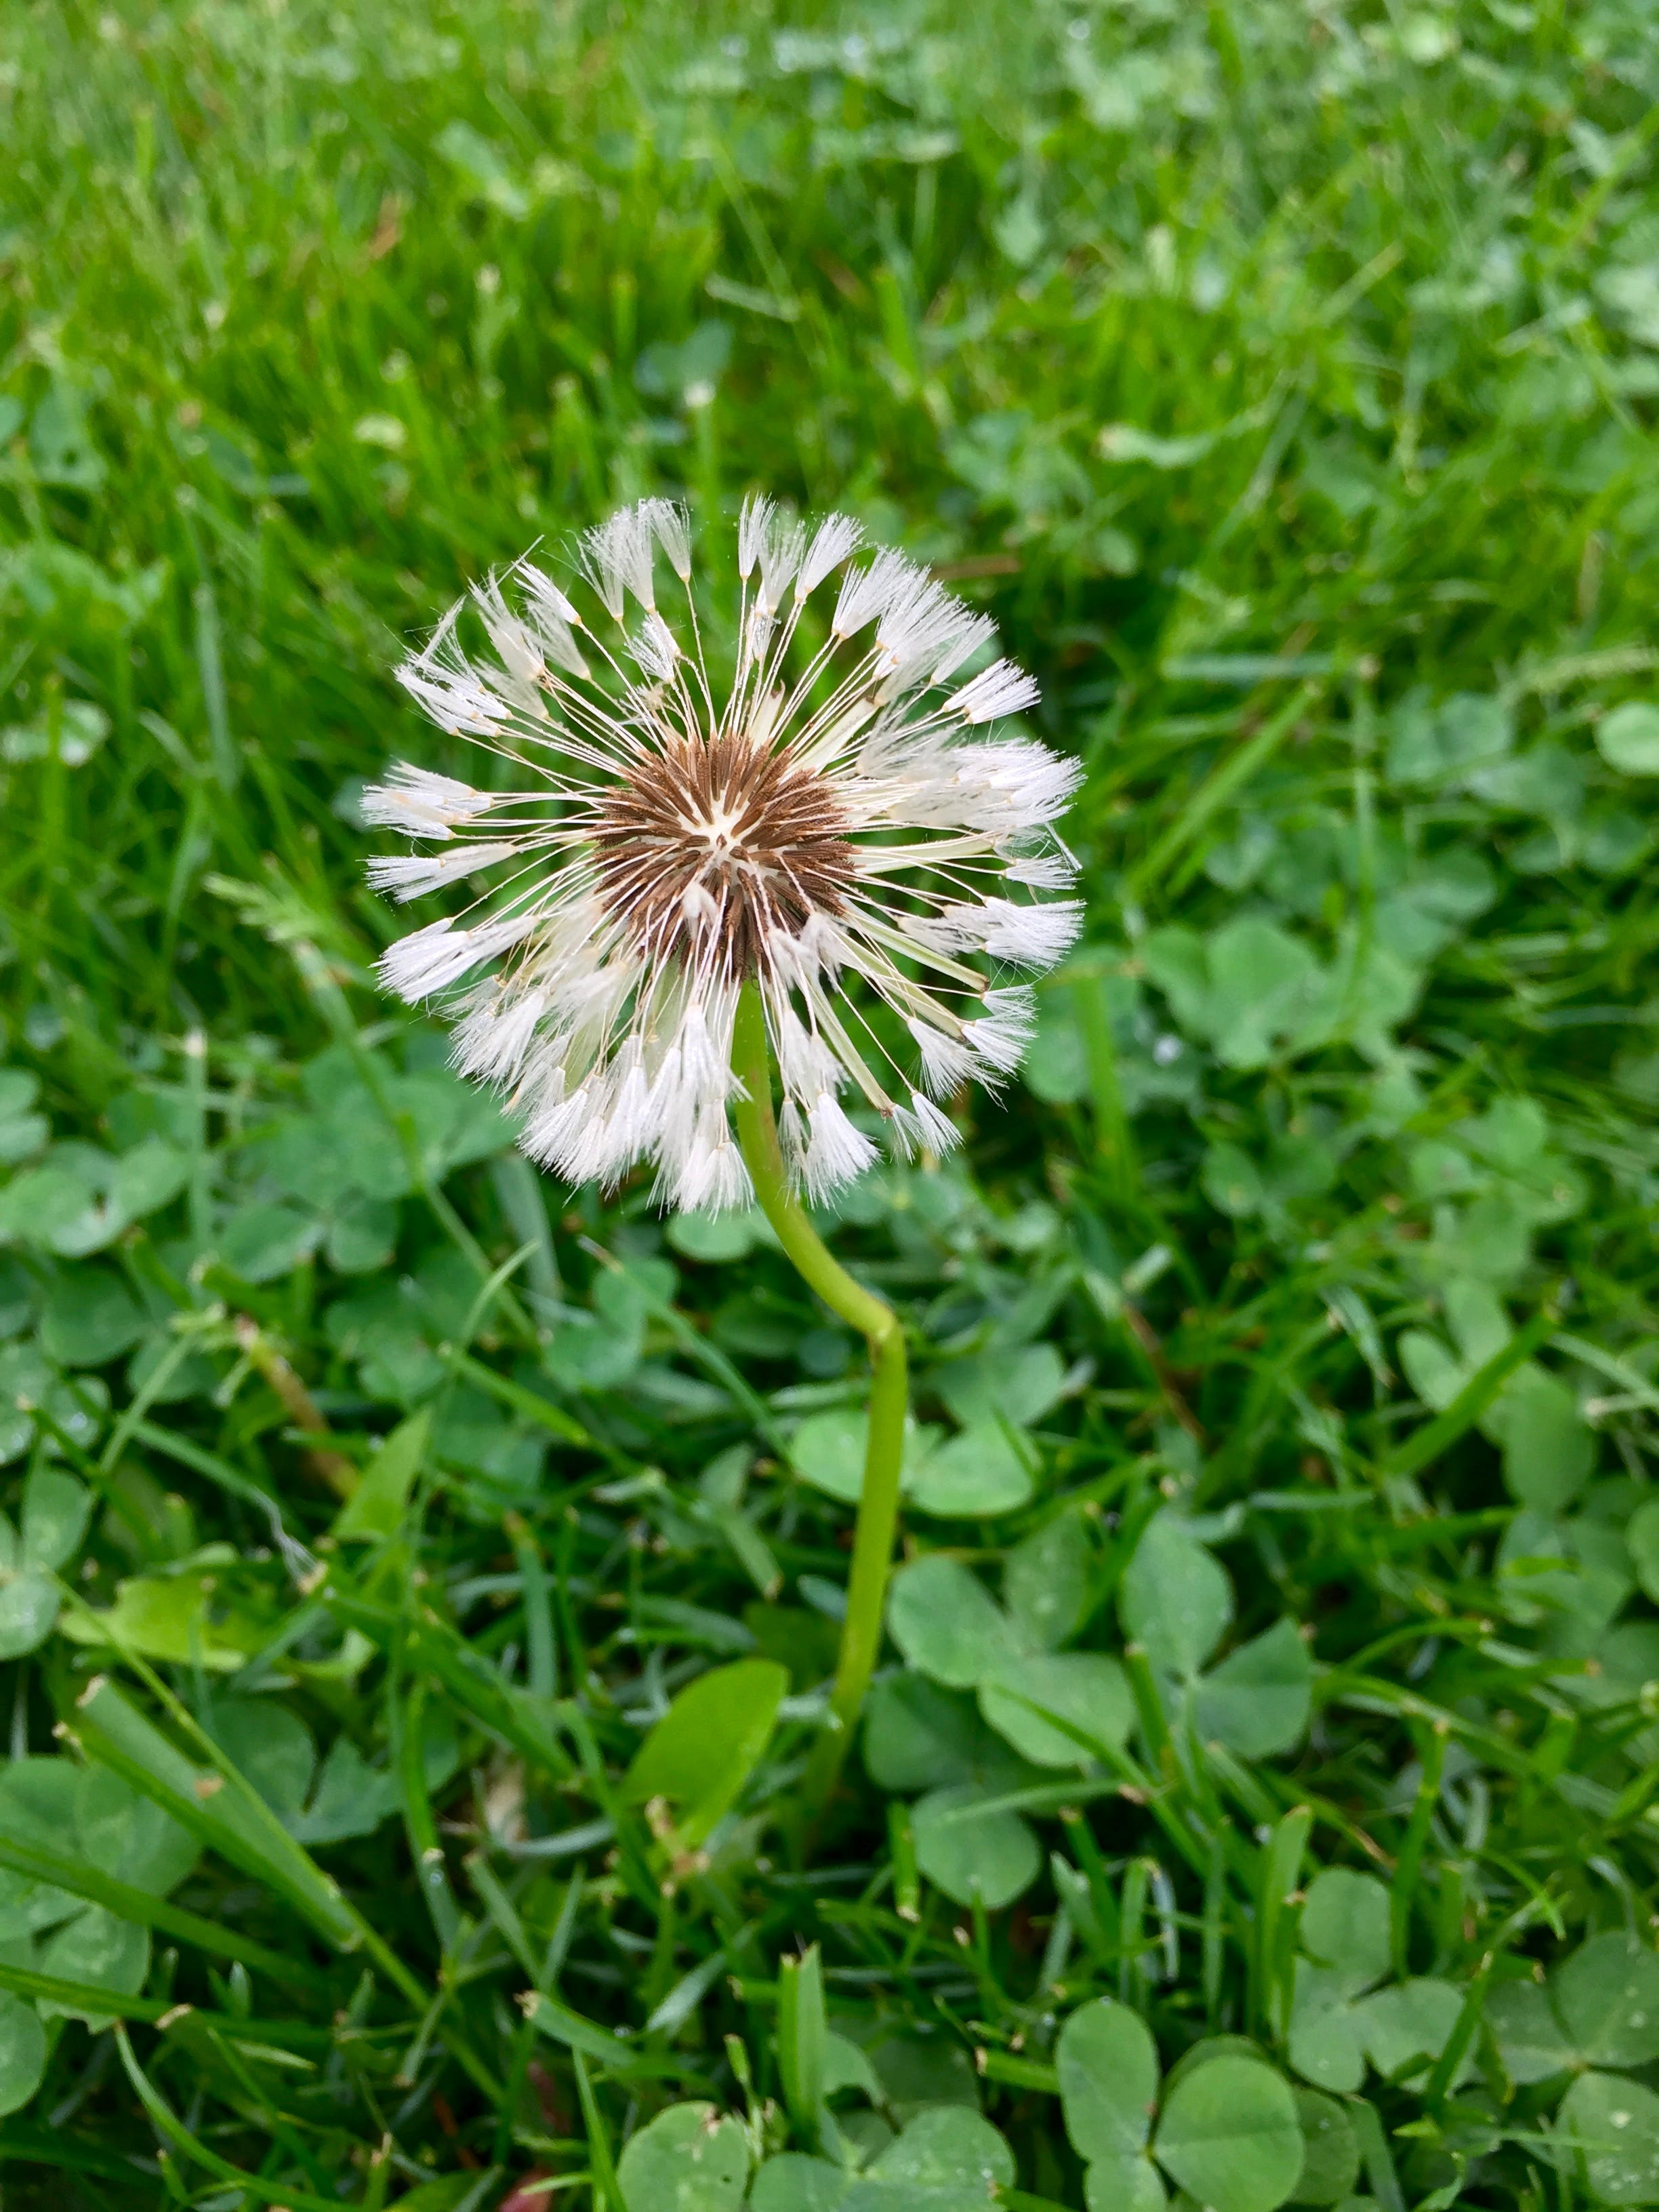 Free stock photo of dandelion, flower, grass, weed